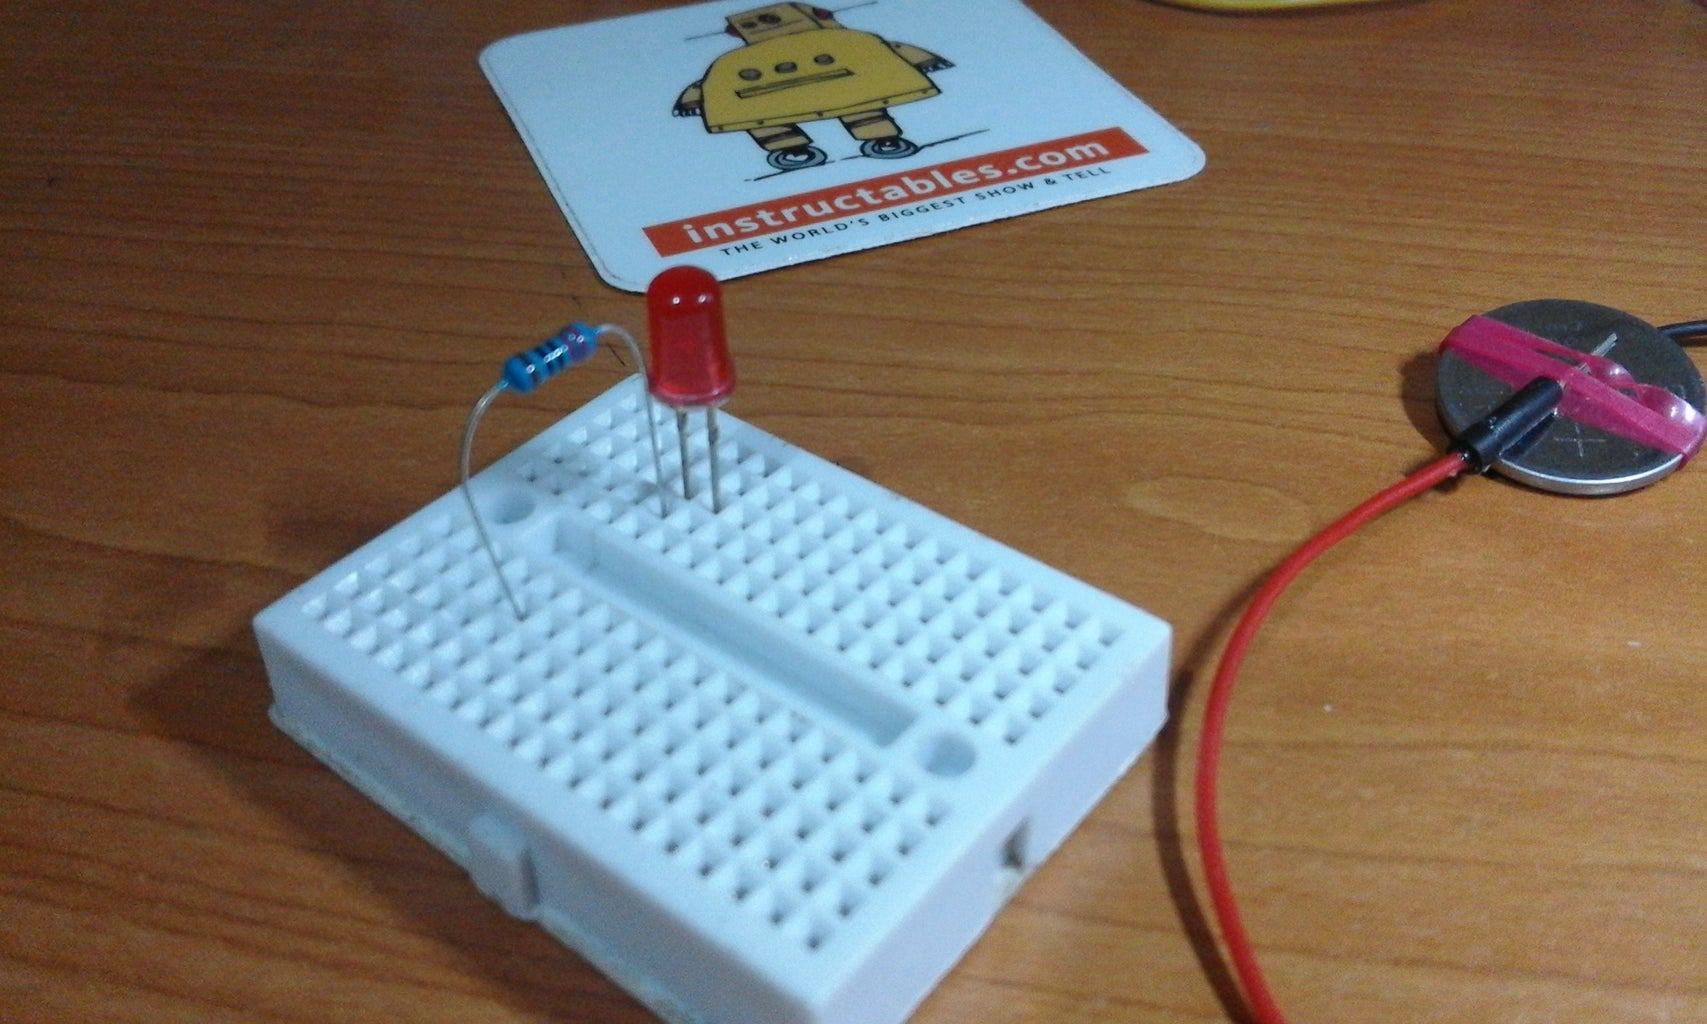 LED and Resistor for Testing